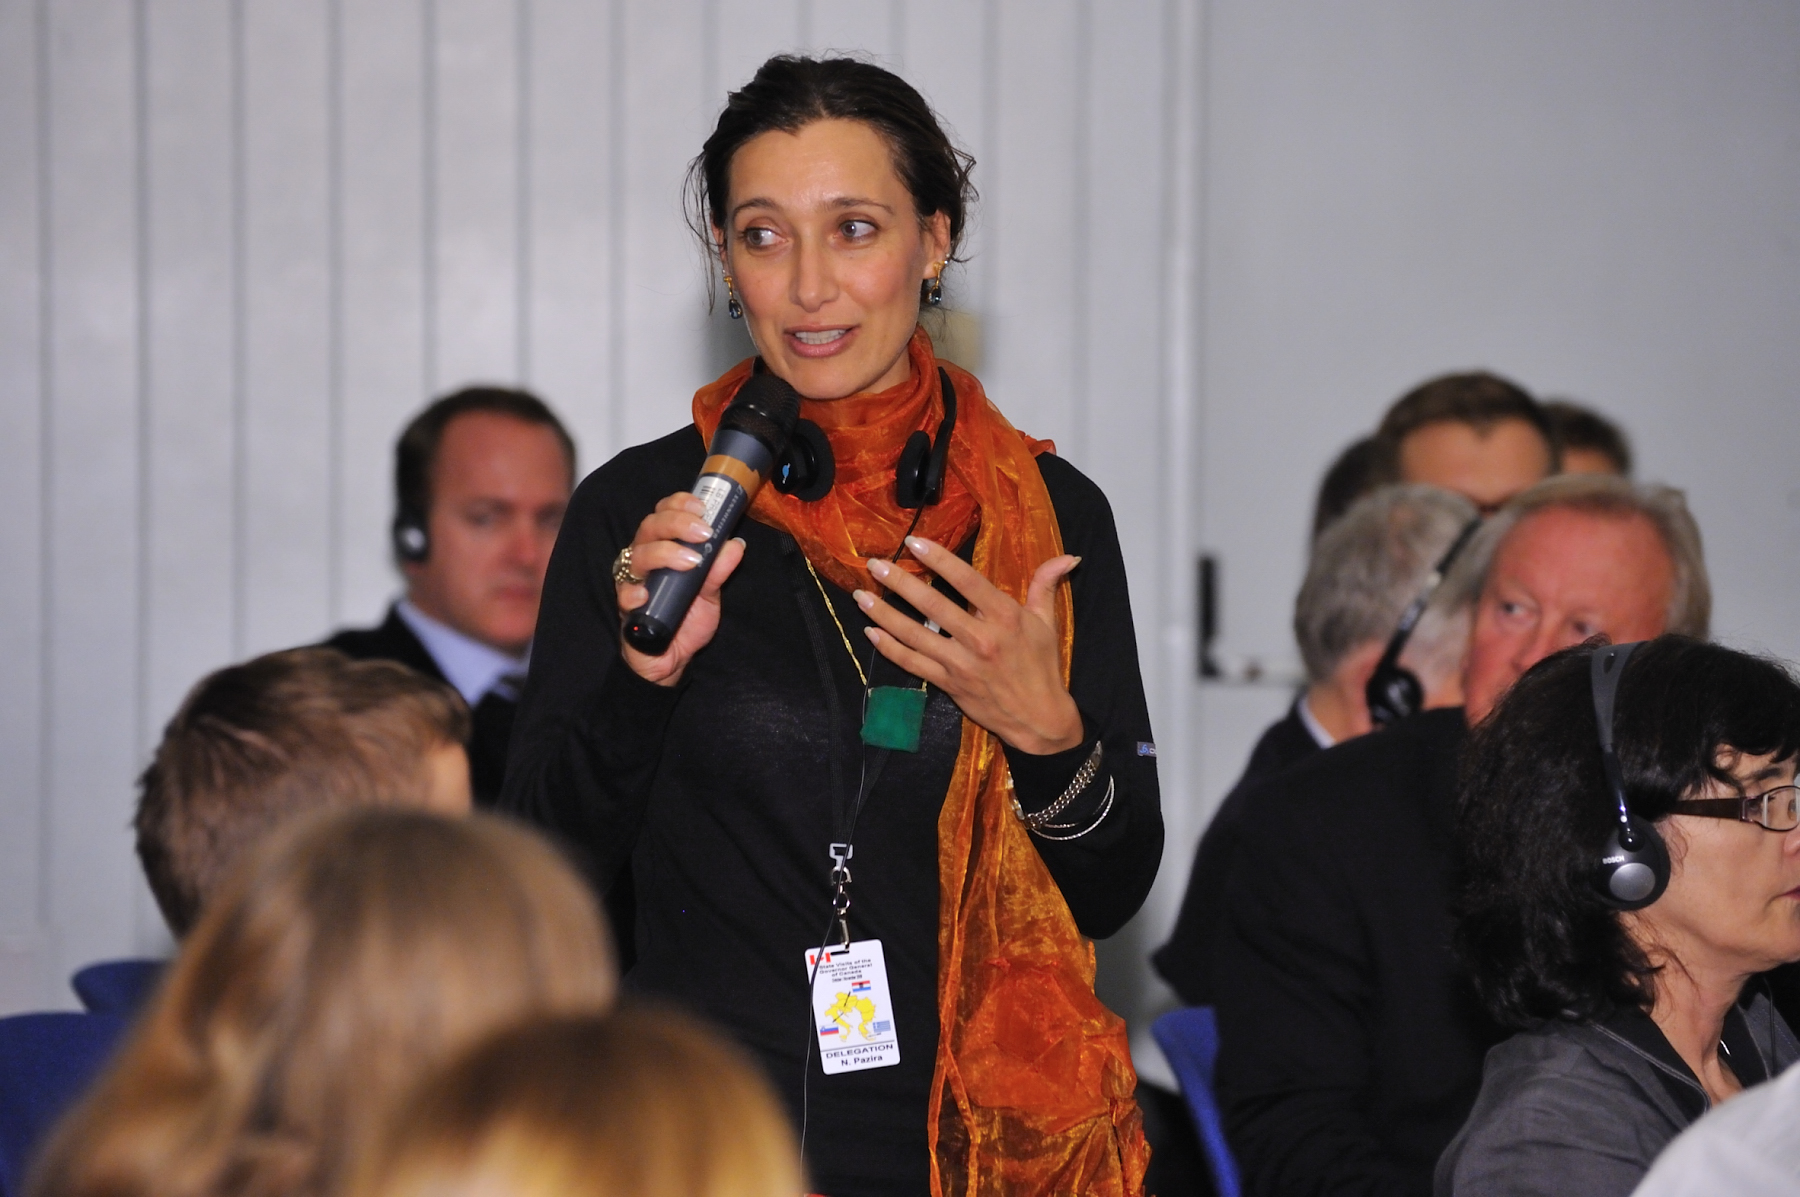 Canadian delegate Nelofer Pazira, filmmaker and journalist, also took part in the Dialogue.